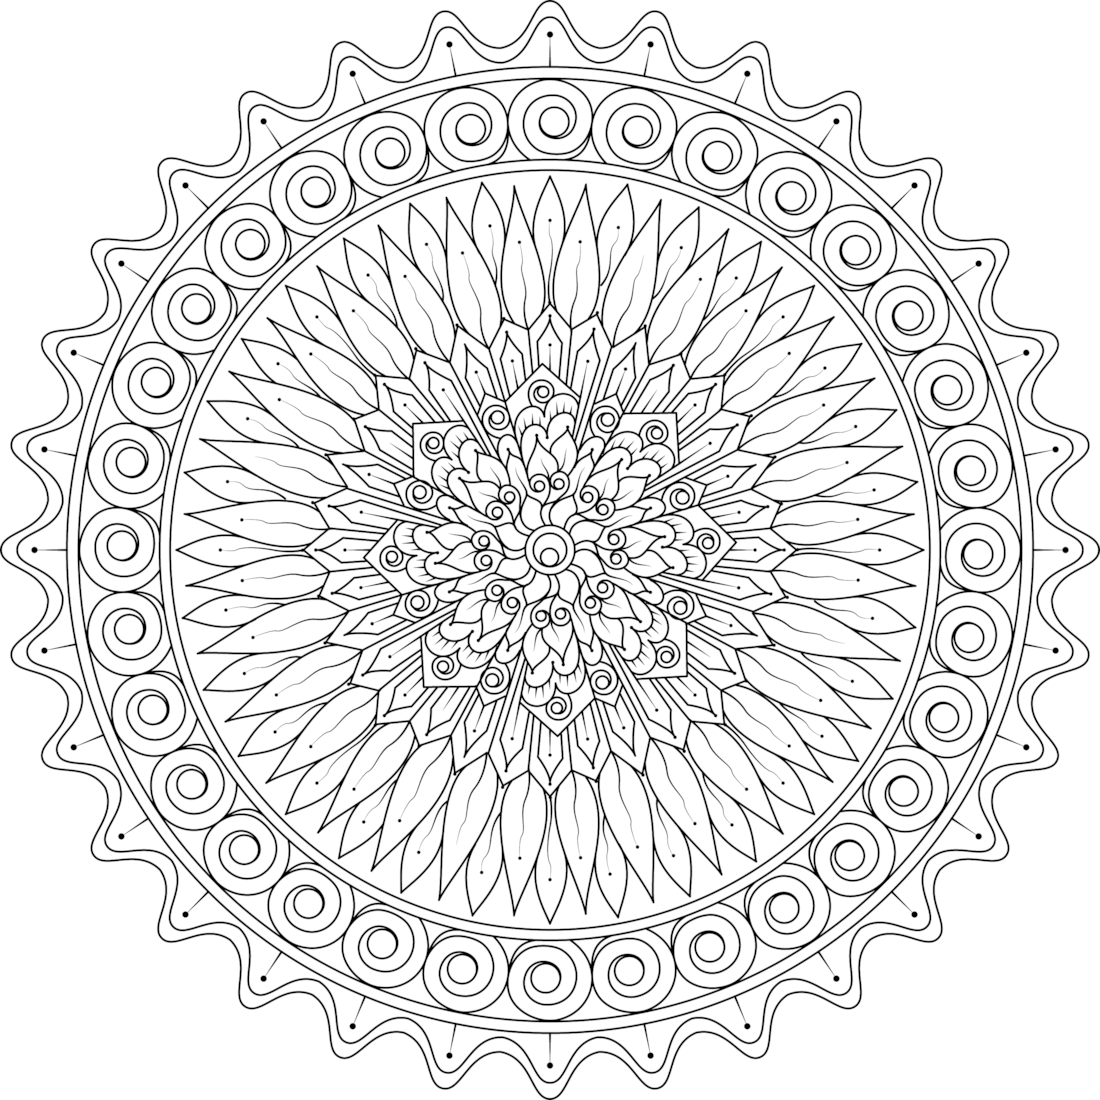 Picture of Kindled Love coloring page | Inspired | Pinterest ...